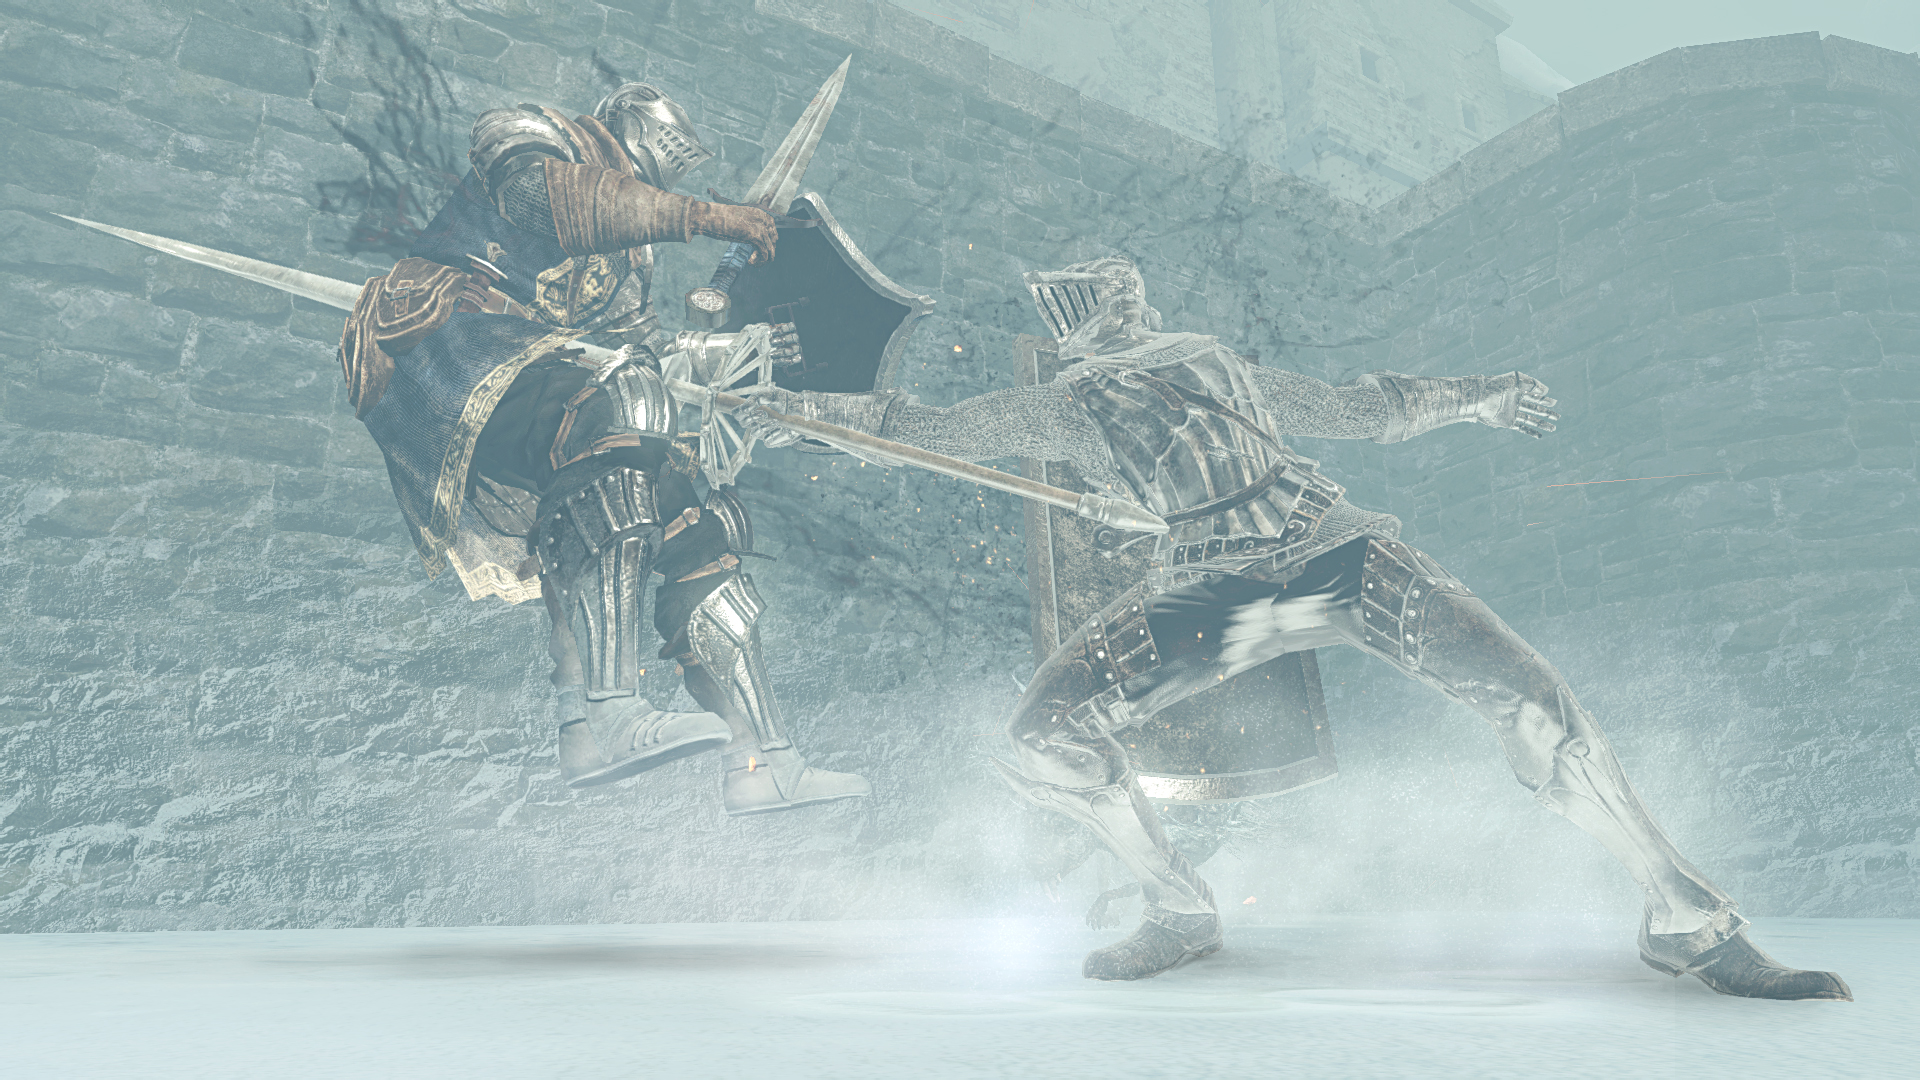 Get A Bit More Of Punishment With Dark Souls II's Scholar Of The First Sin DLC